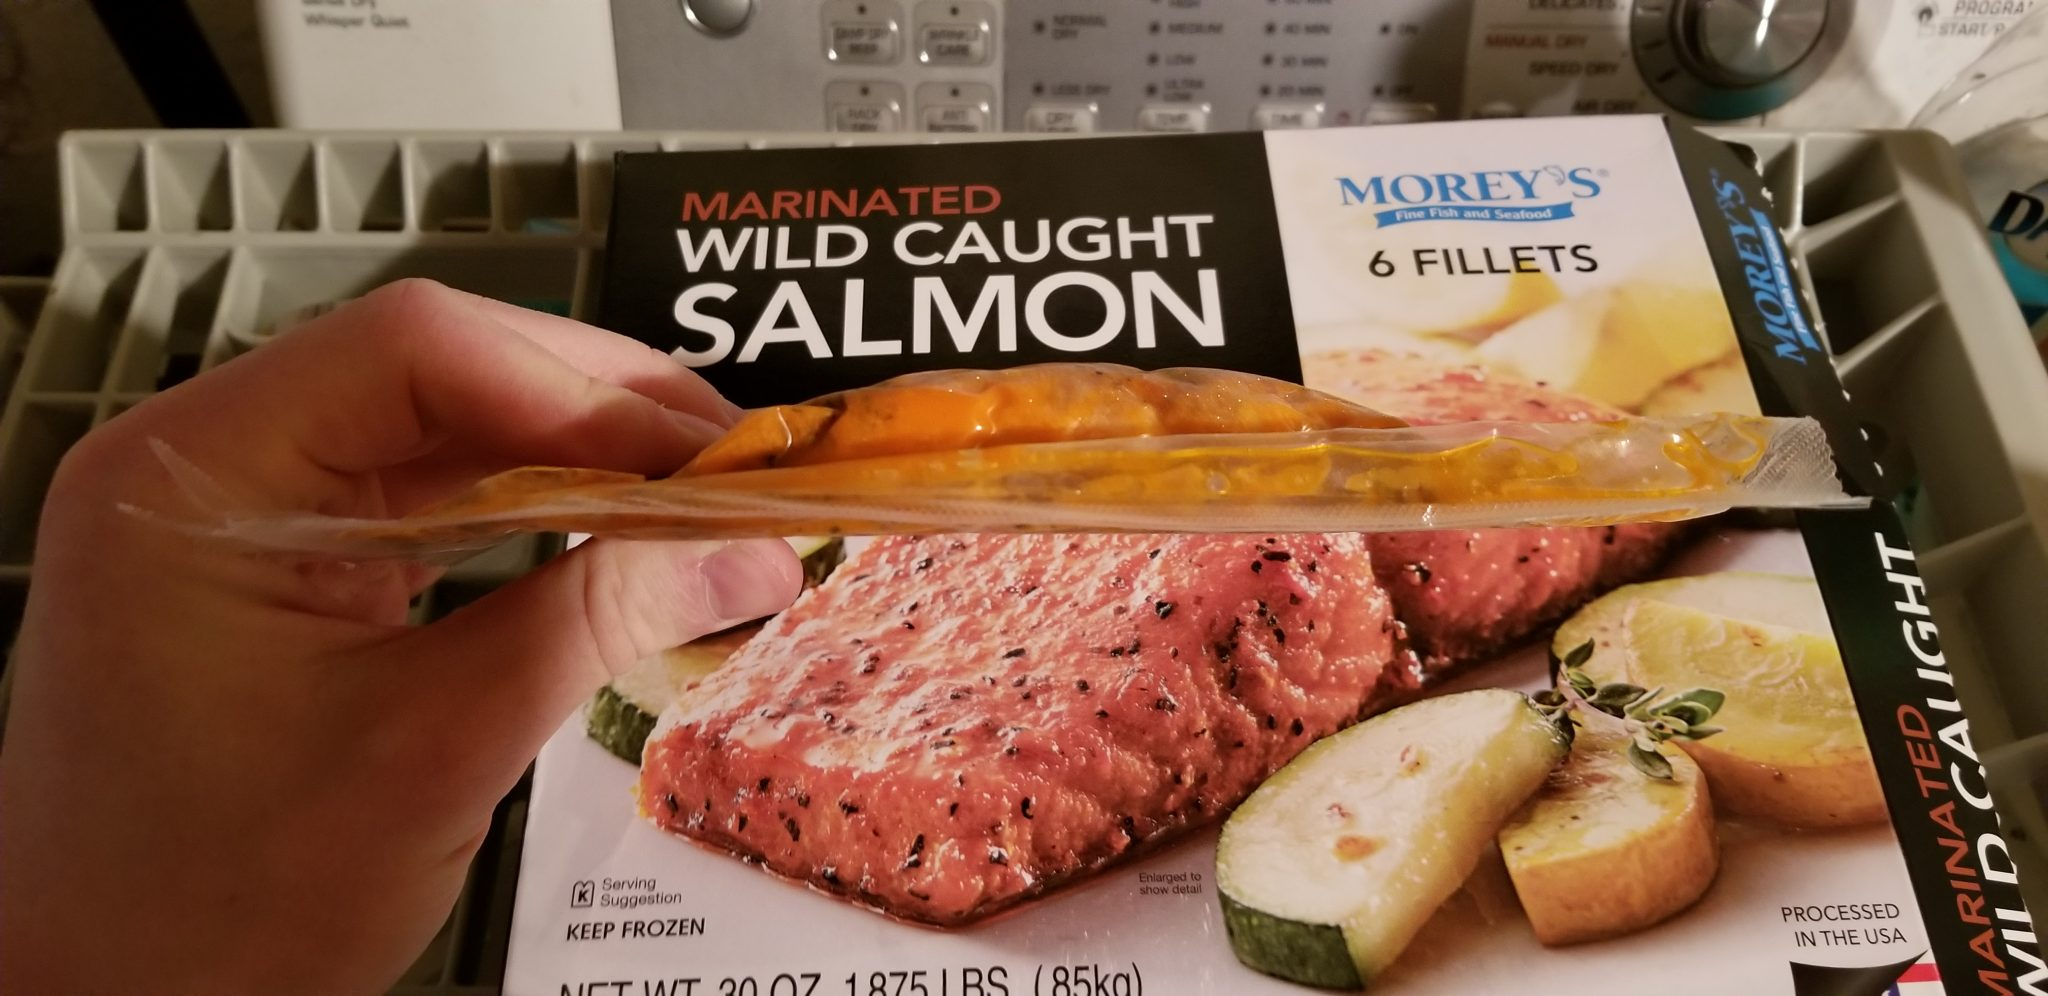 Morey's Wild Caught Salmon Air-tight pouch in profile